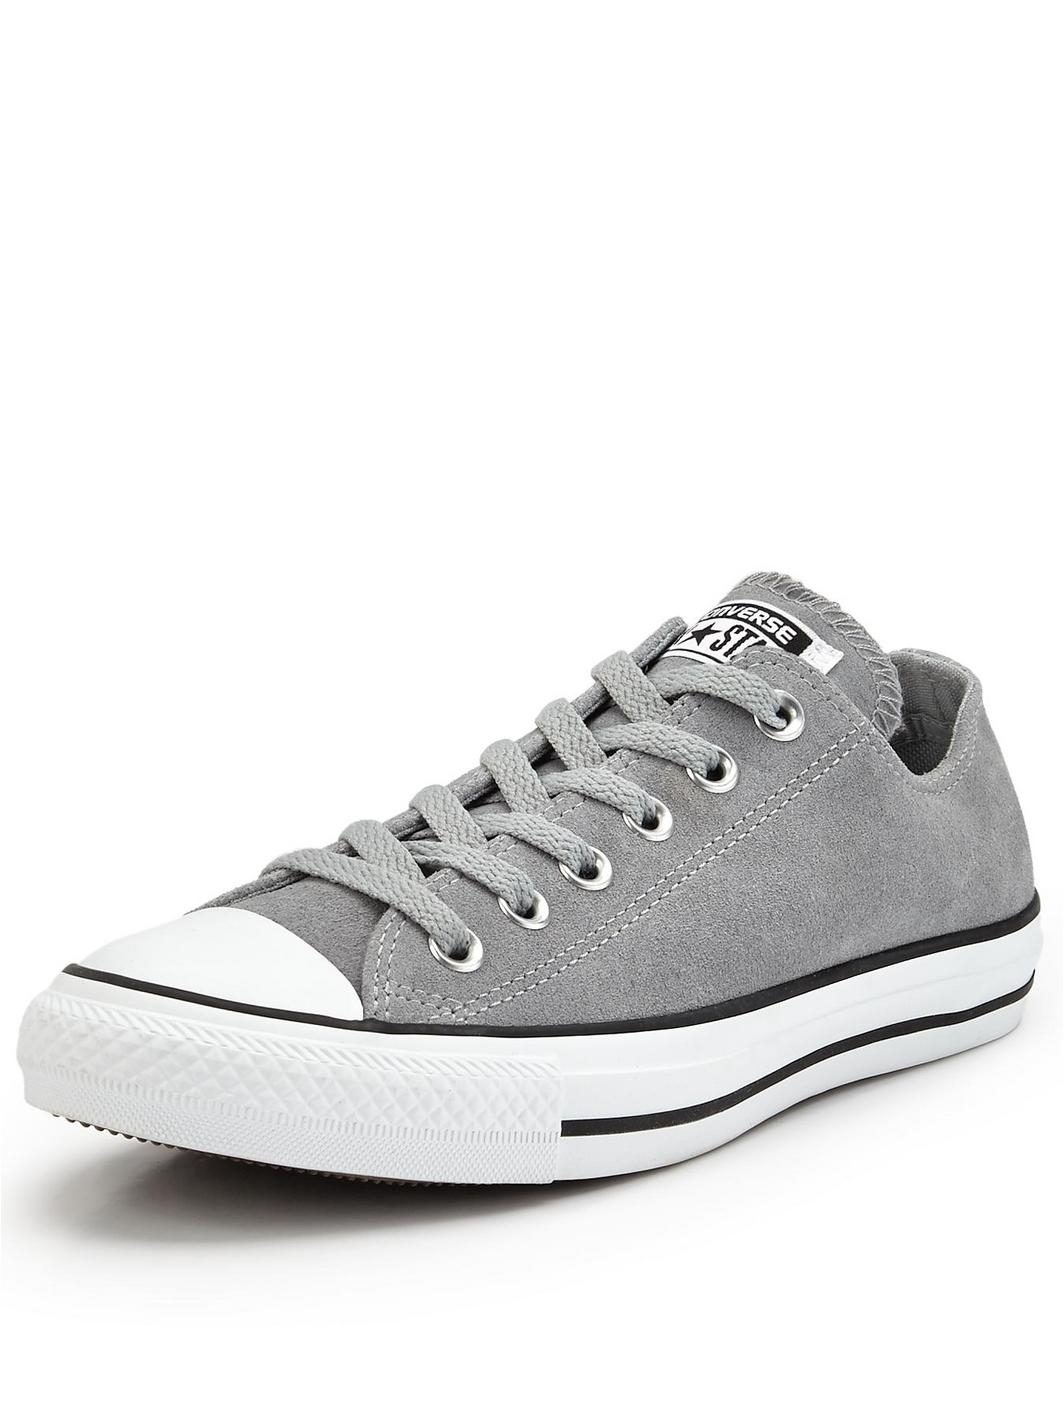 eddb0f5e0c5d Converse Chuck Taylor All Star Ox Suede Trainers in Gray .